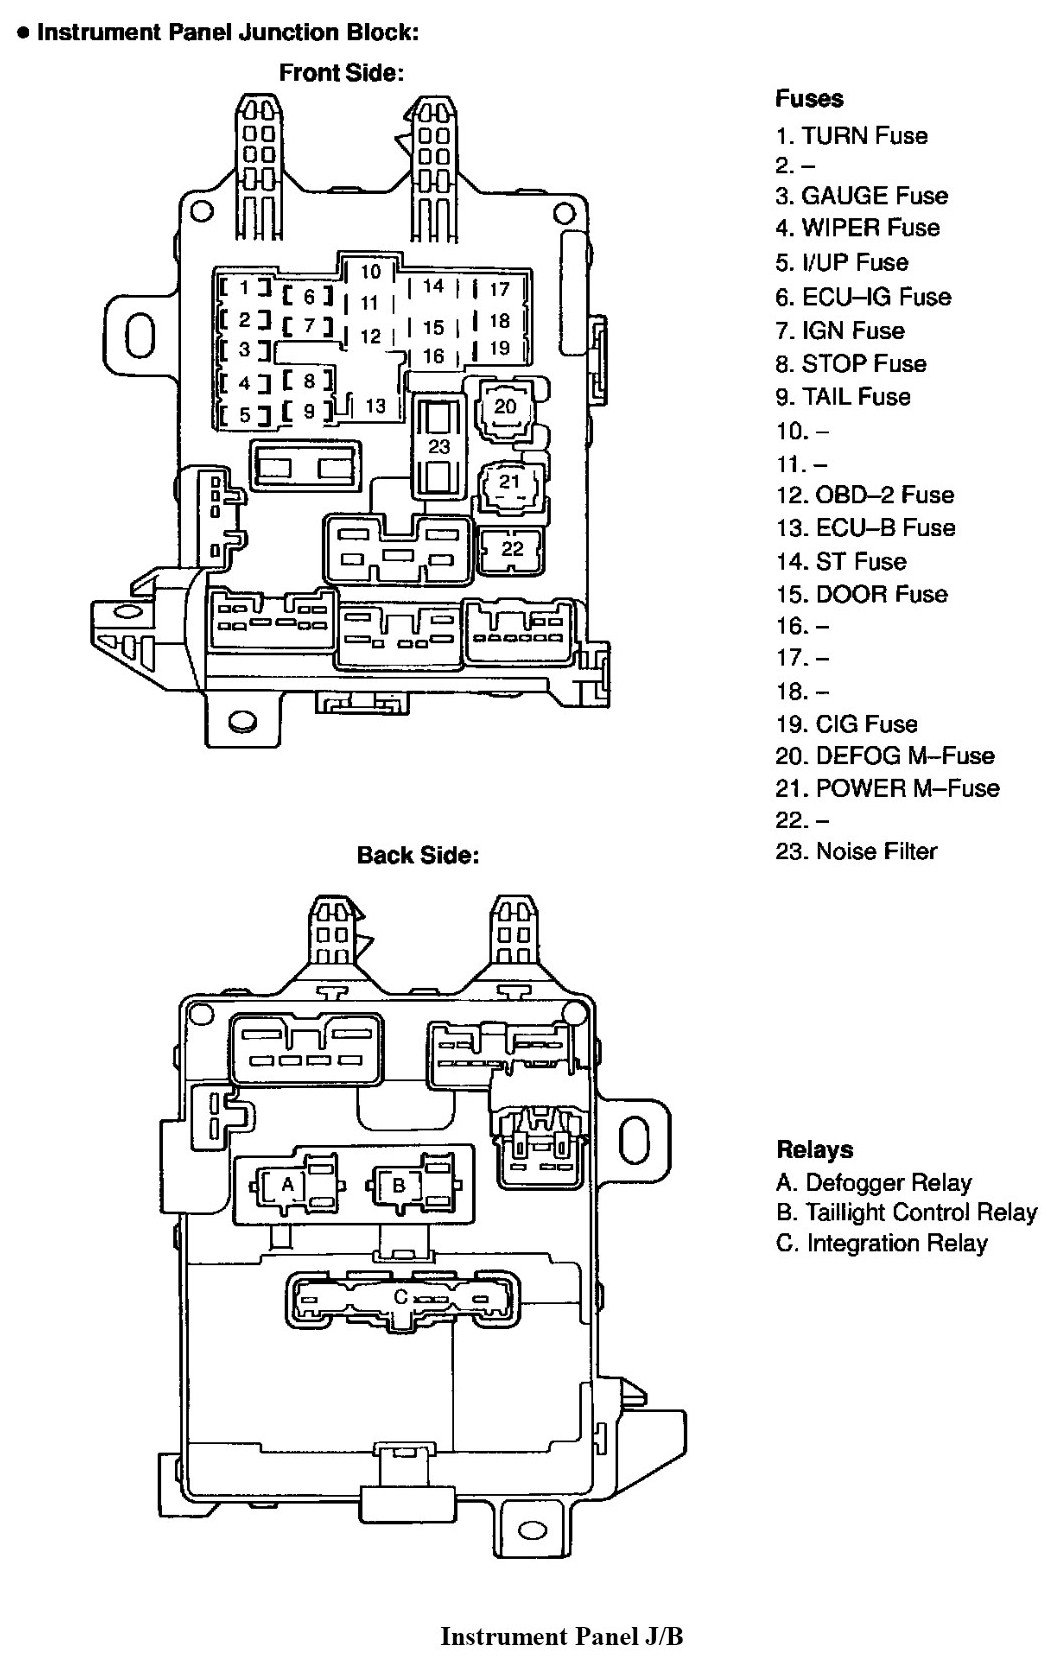 2001 Toyota Corolla Fuse Diagram 1999 Saturn Sc 1 Box Wiring Schematics Rh Thyl Co Uk Radio